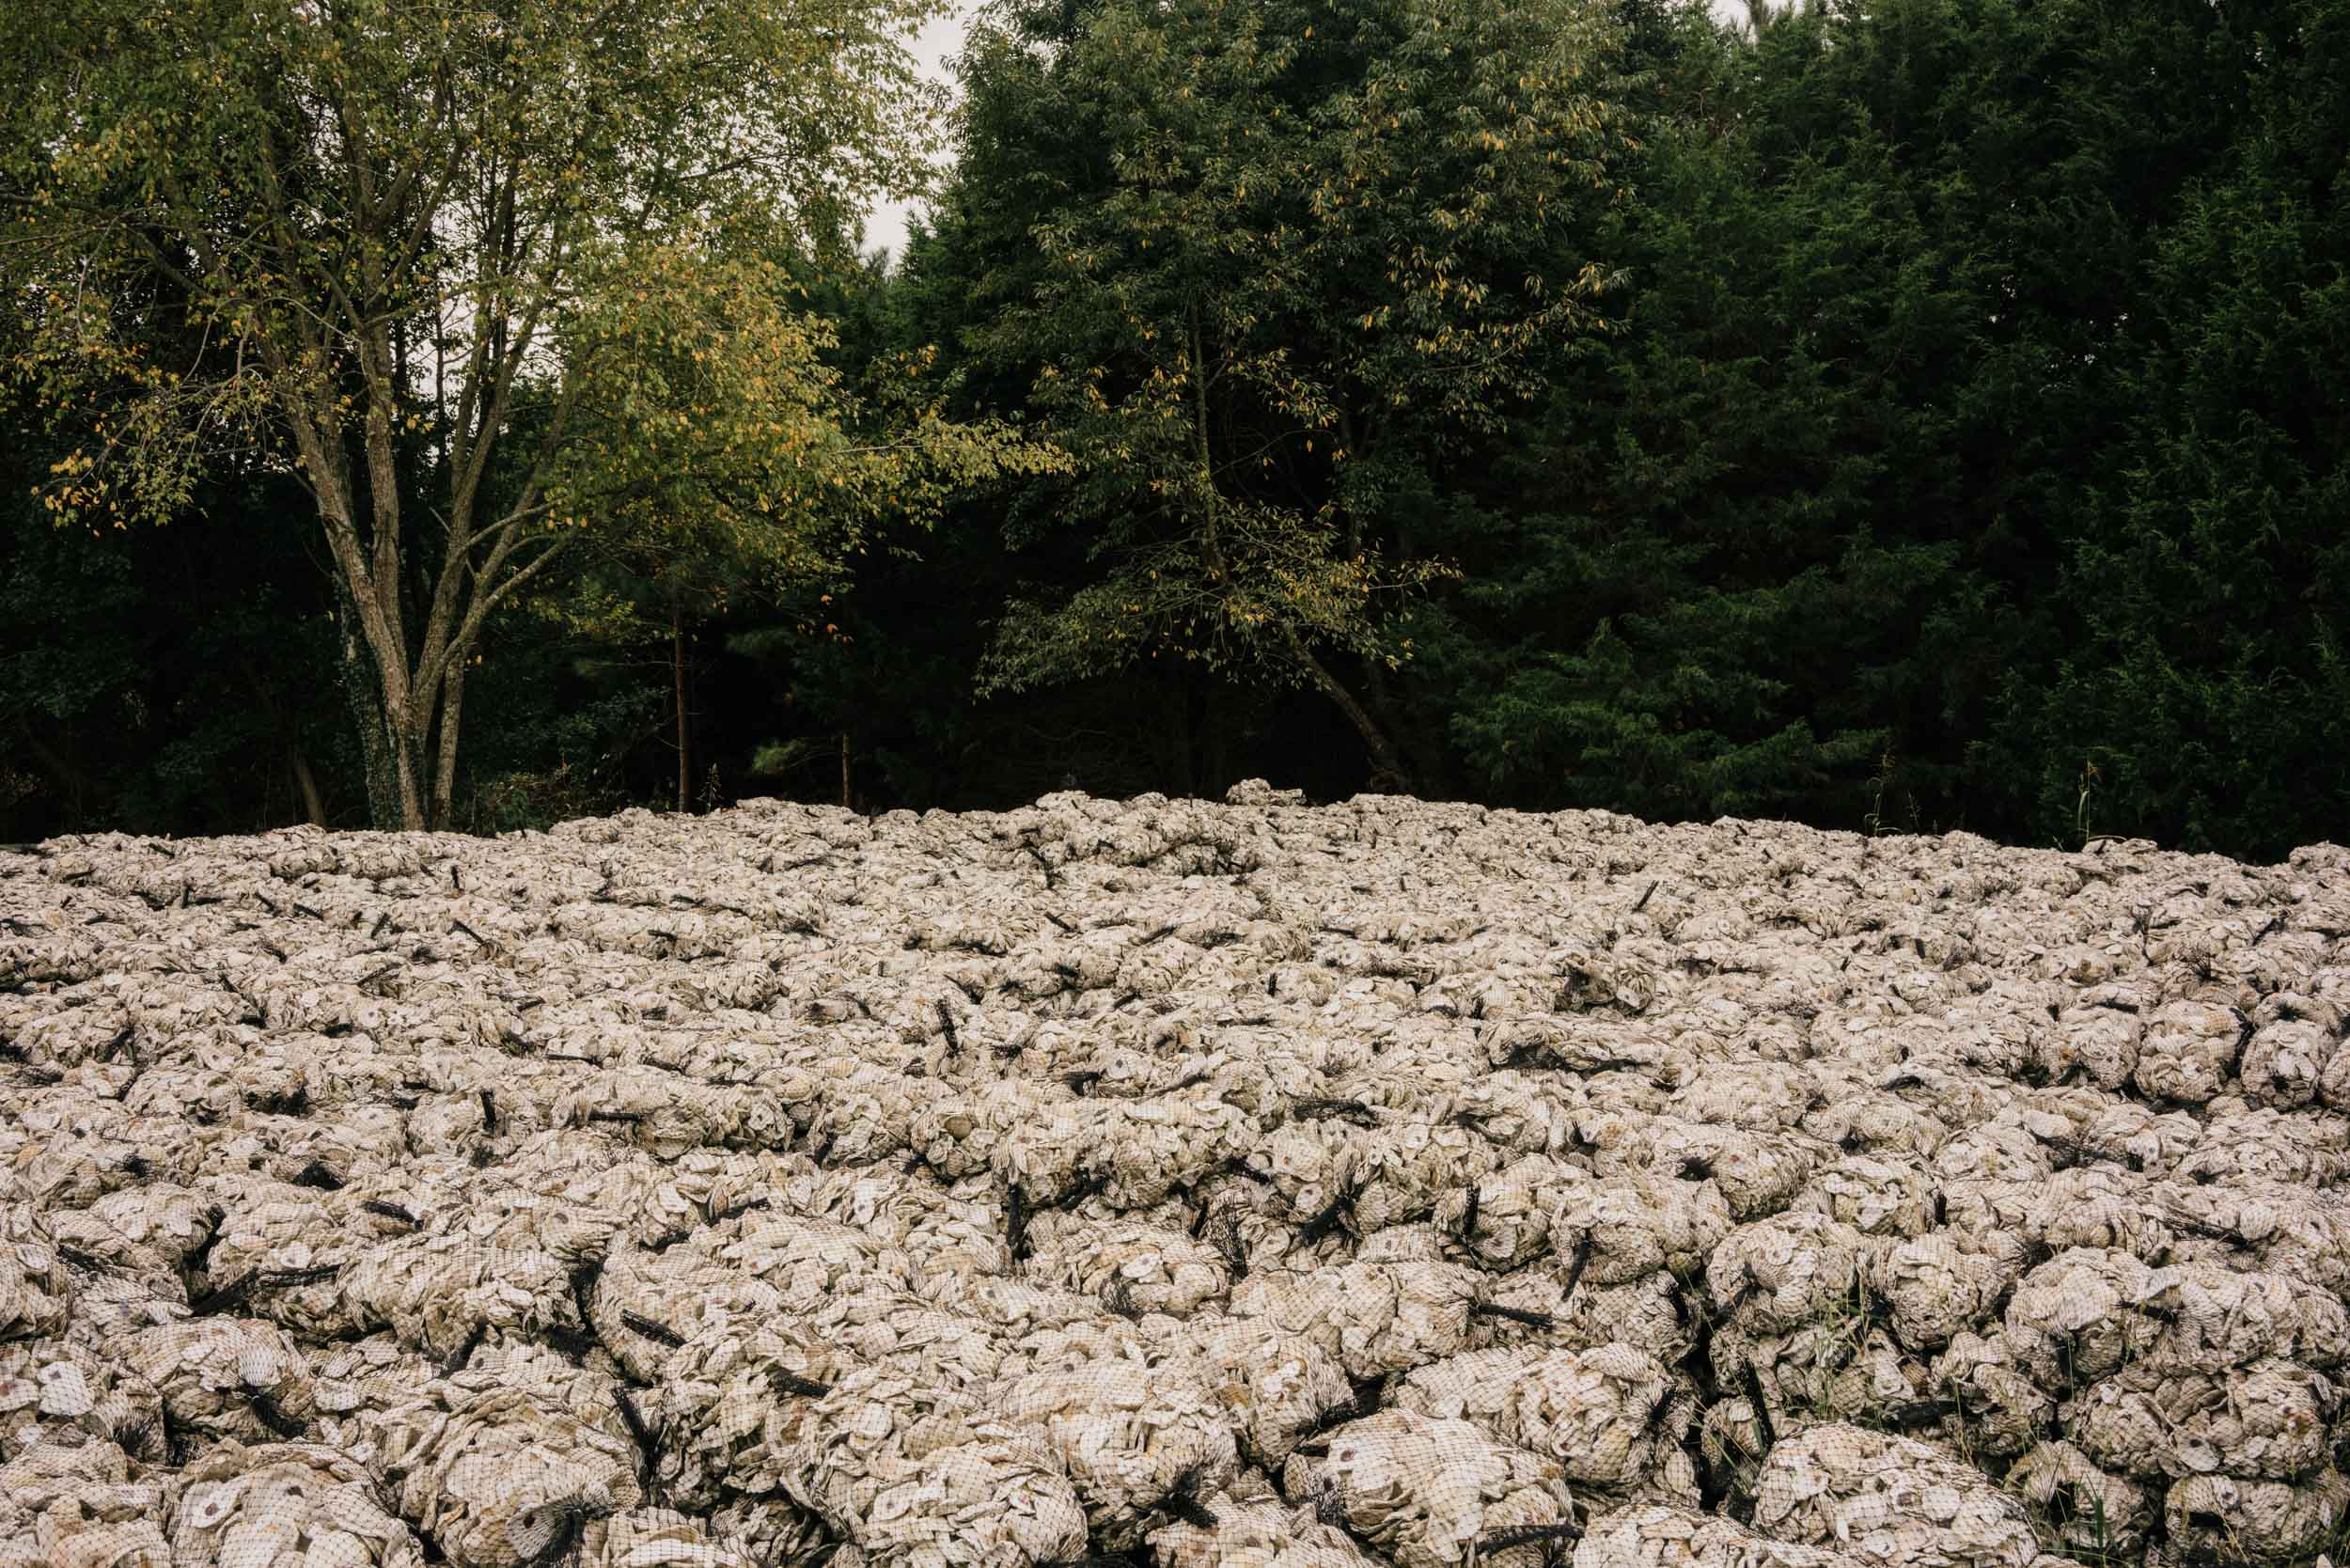 thousands of oyster shells in bag stacked near trees